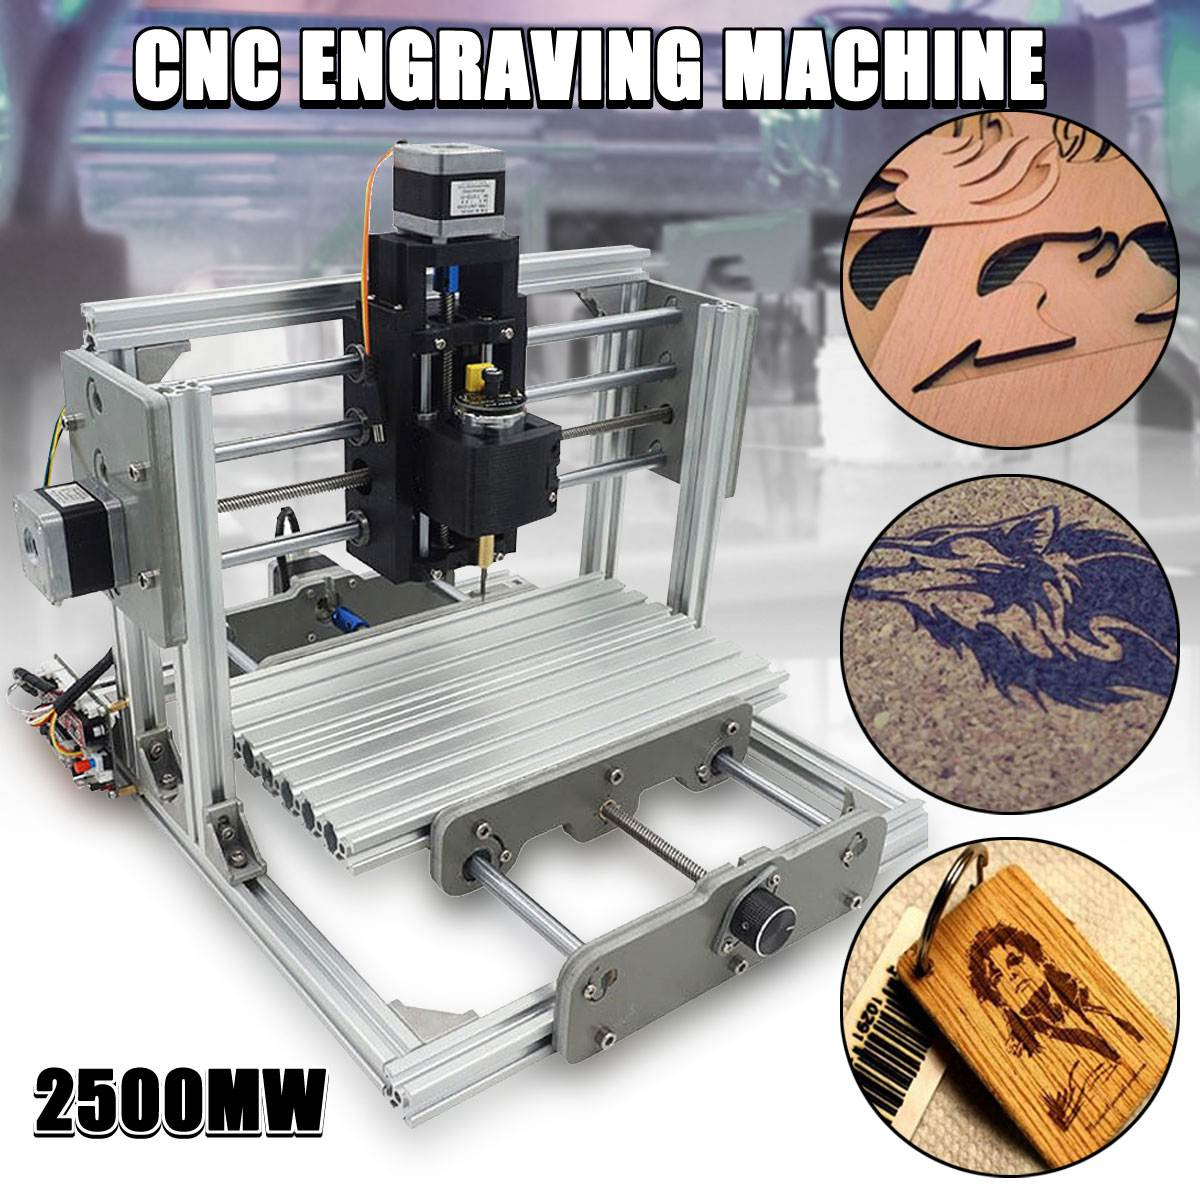 DC 12V 2500MW 3 Axis Mini DIY Desktop CNC Laser Engraver Engraving Machine Milling Carving Cutter Wood Router 0.04MM+ T8 Screws mini engraving machine diy cnc 3040 3axis wood router pcb drilling and milling machine